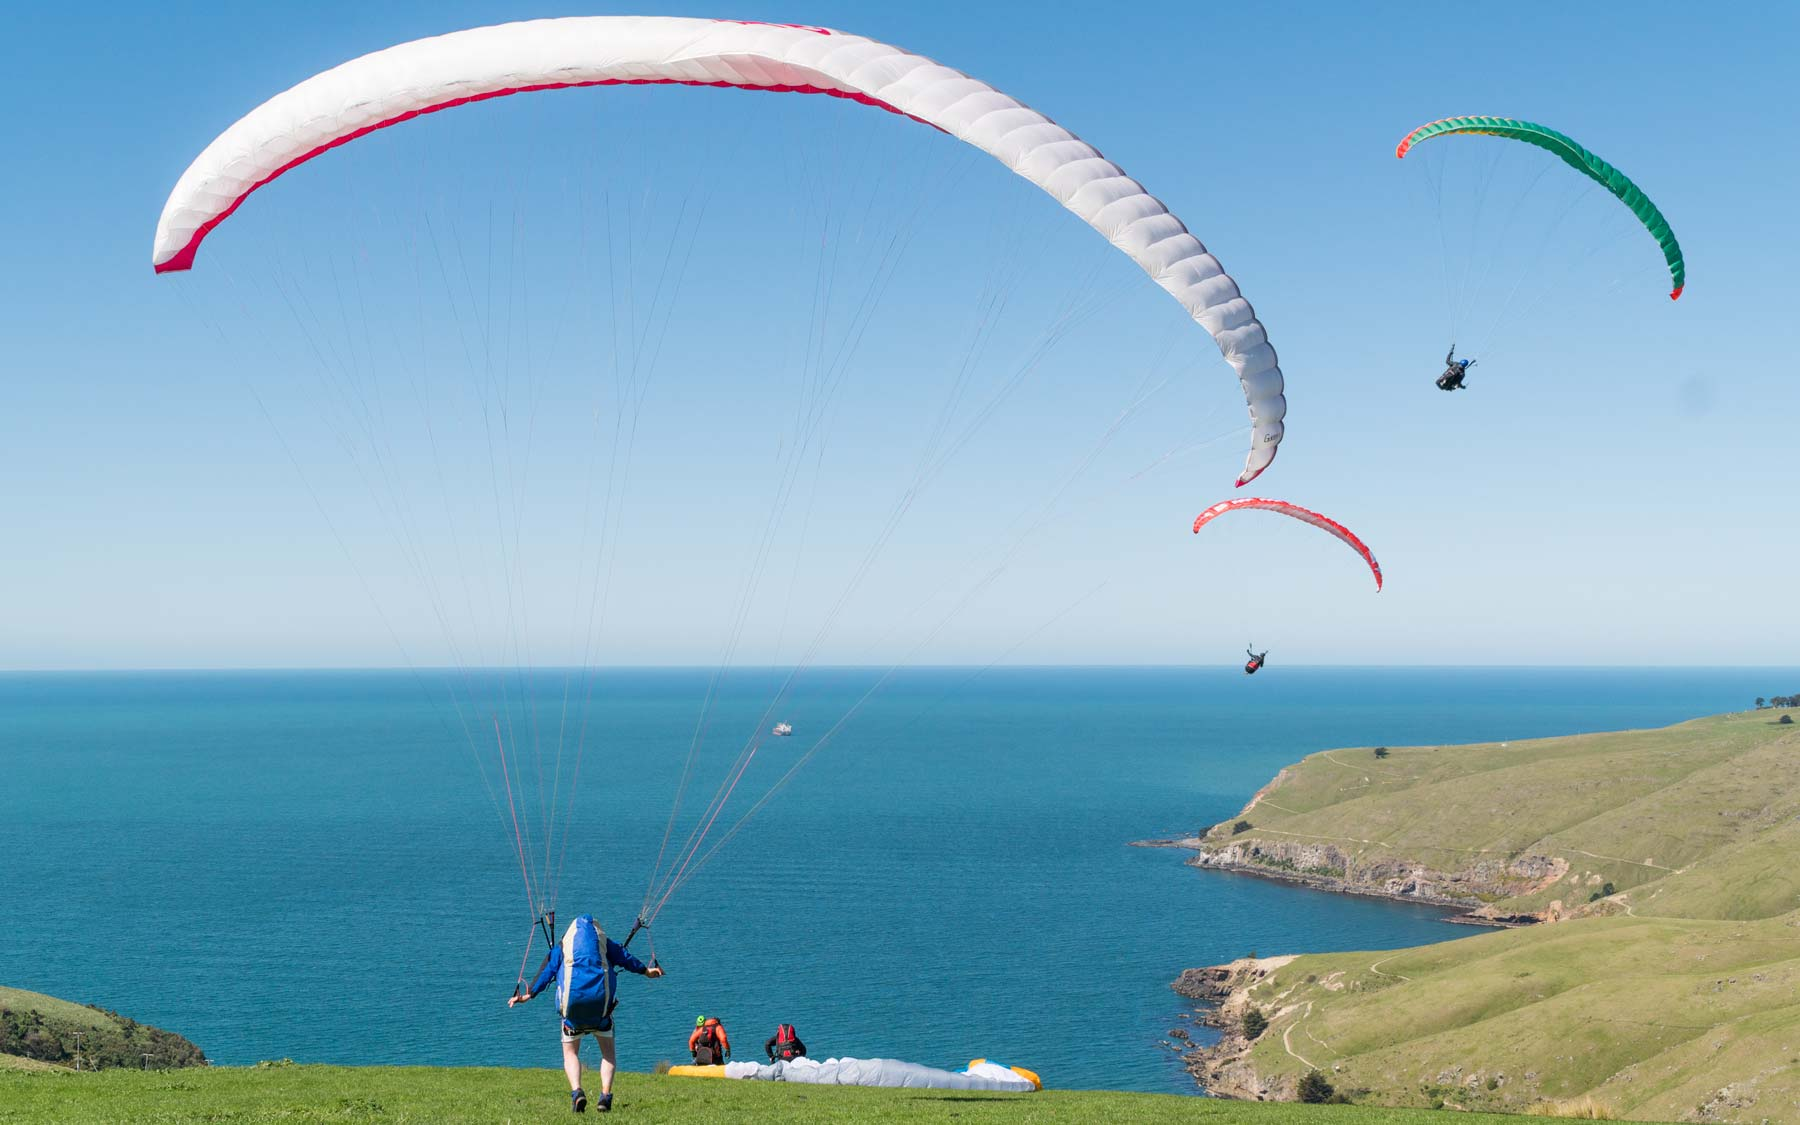 A paraglider attempts to take off at Sumner, Christchurch.